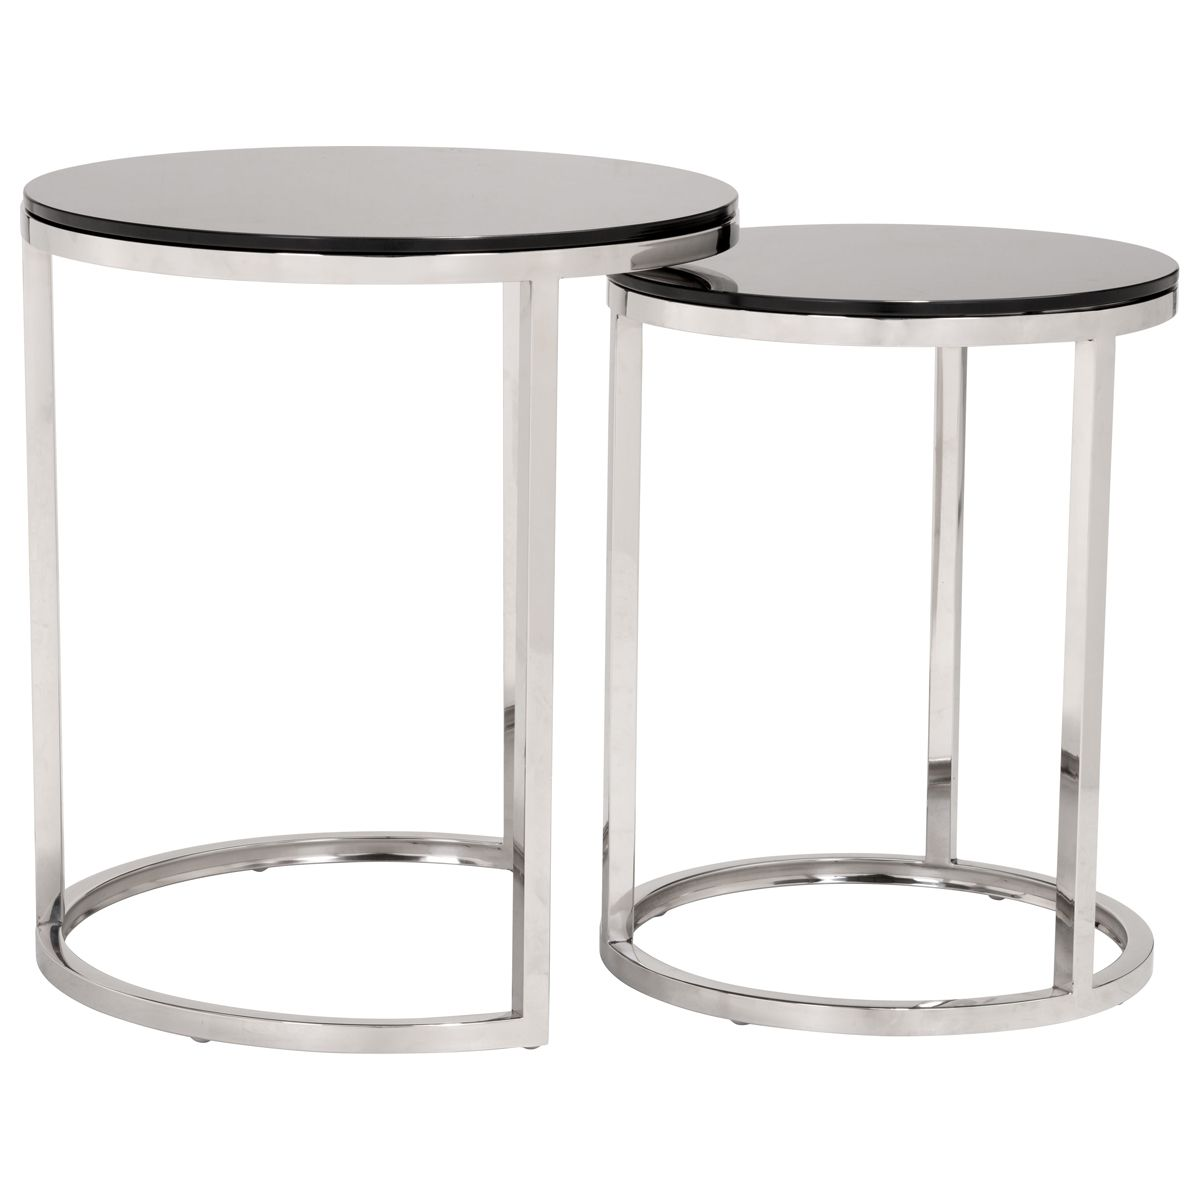 Rem 2 Piece Coffee Table Sets The Rem 2 Piece Coffee Table Set By Zuo Is Elegantly Simple Yet Coffee Table Setting Nesting Coffee Tables Modern Coffee Tables [ 1200 x 1200 Pixel ]